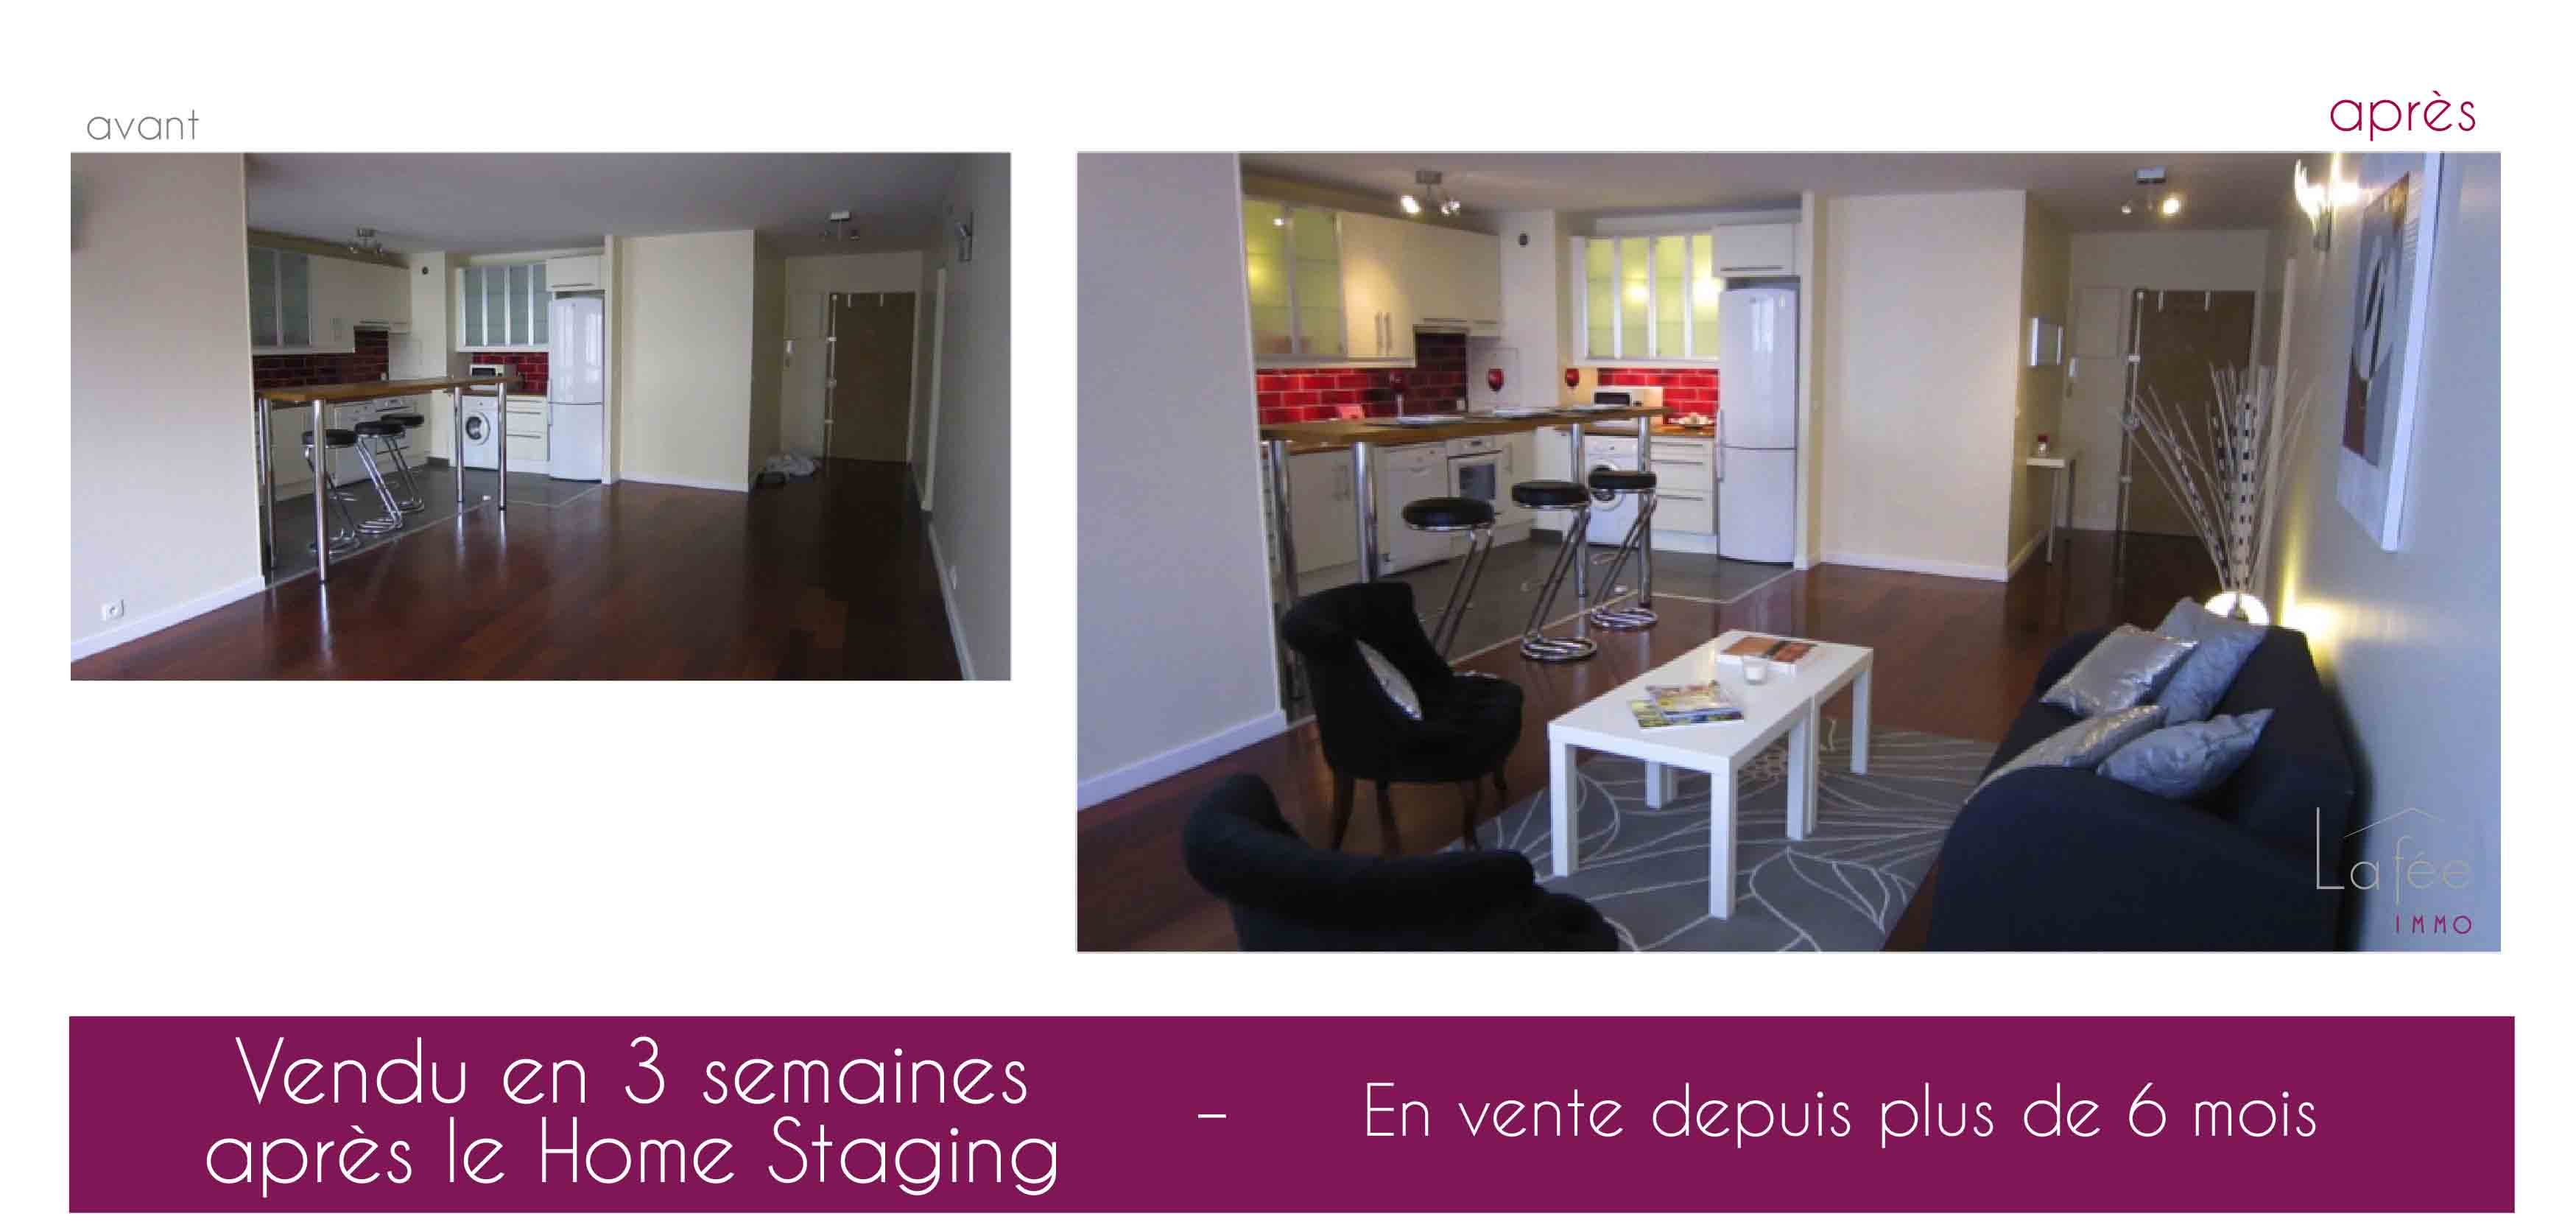 home staging de lieux vides 1